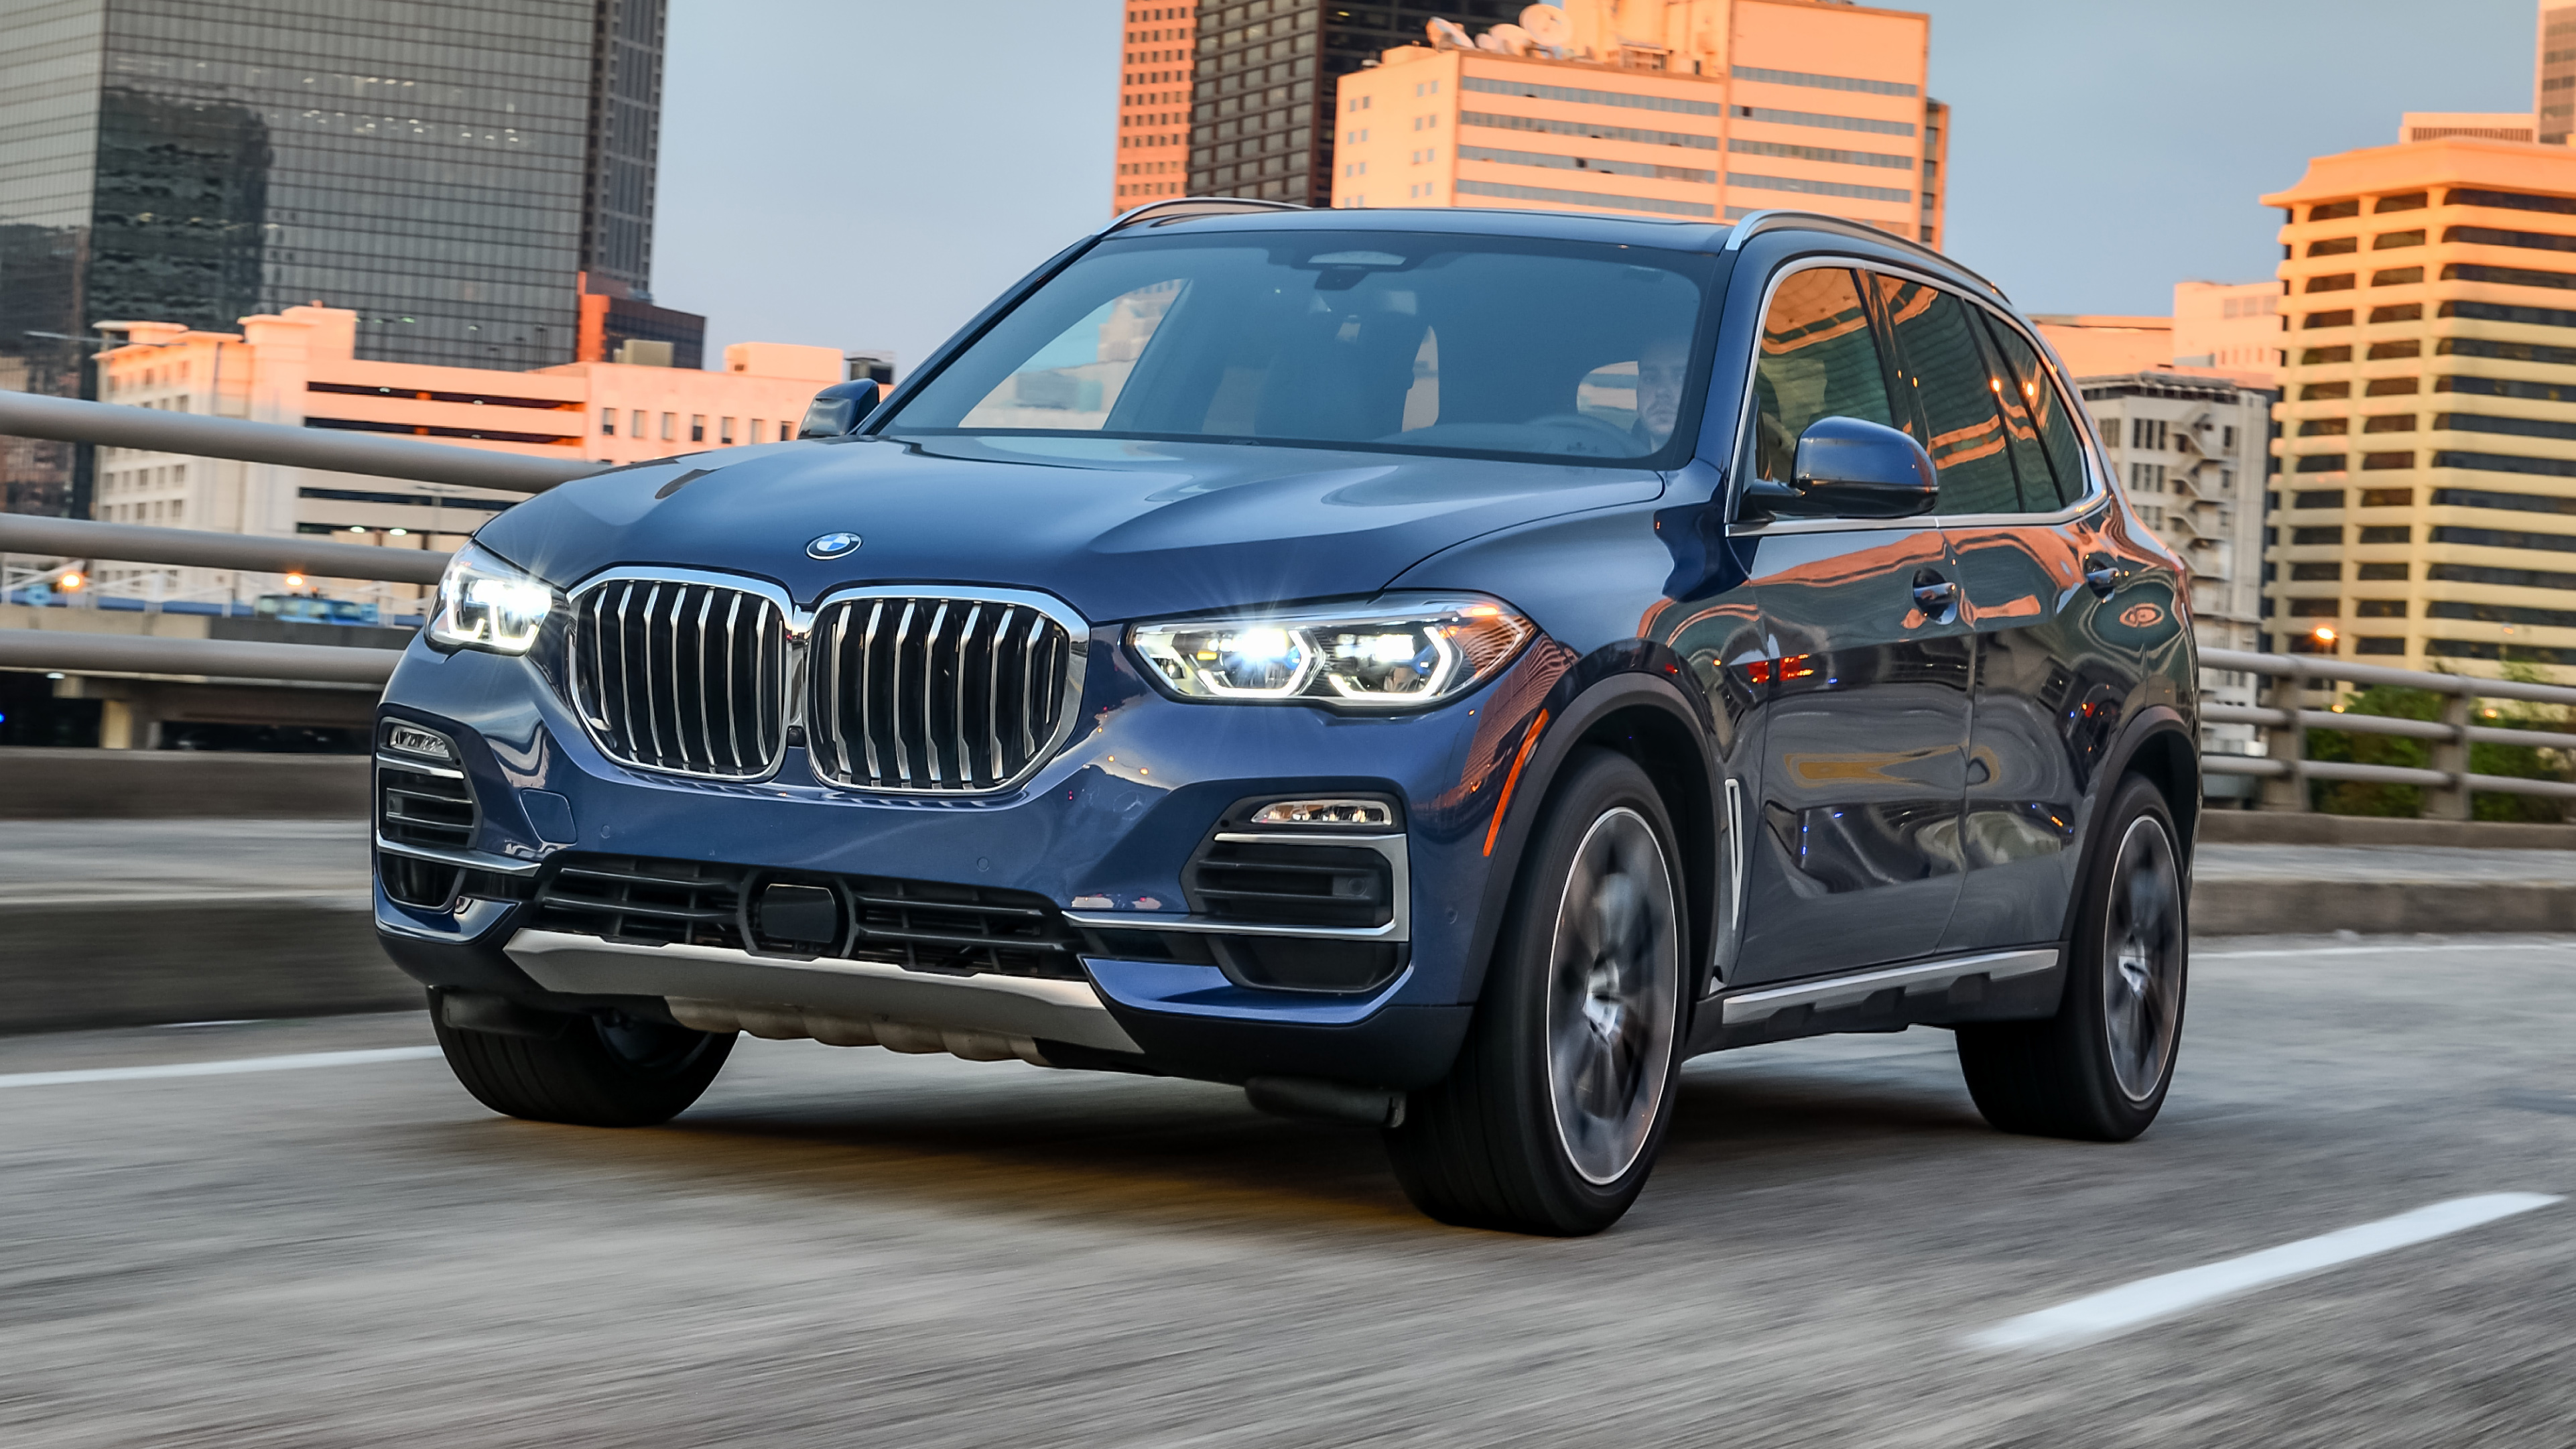 Bmw X5 Xdrive40i Pricing And Specs Caradvice